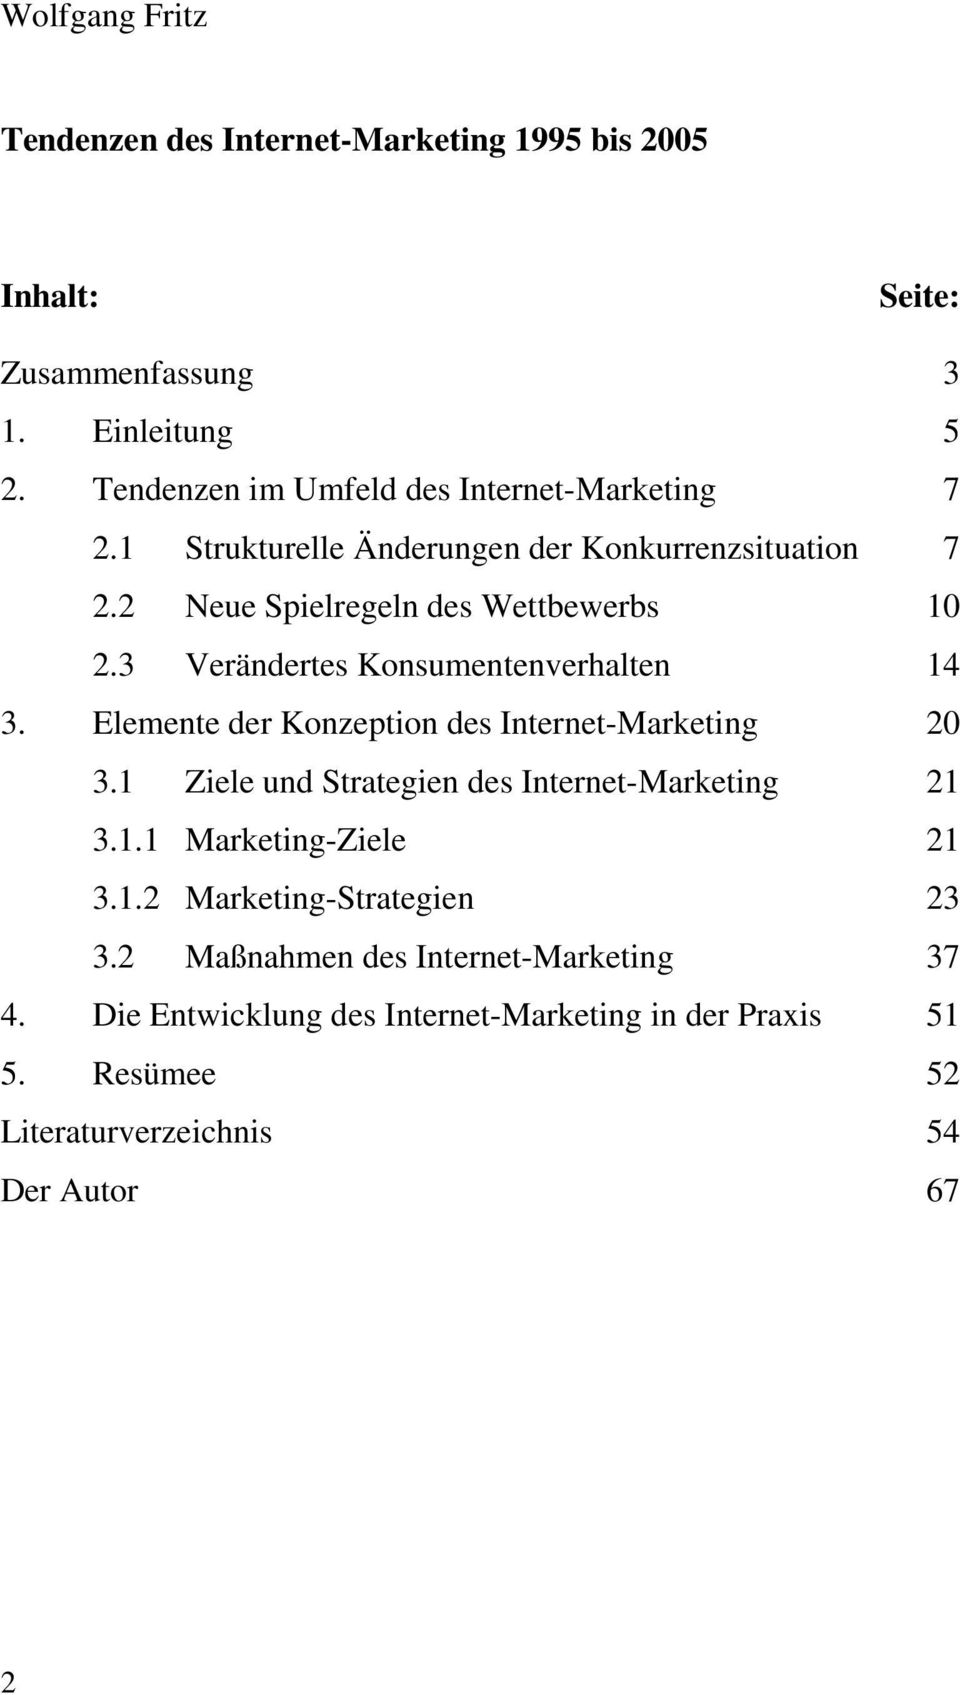 3 Verändertes Konsumentenverhalten 14 3. Elemente der Konzeption des Internet-Marketing 20 3.1 Ziele und Strategien des Internet-Marketing 21 3.1.1 Marketing-Ziele 21 3.